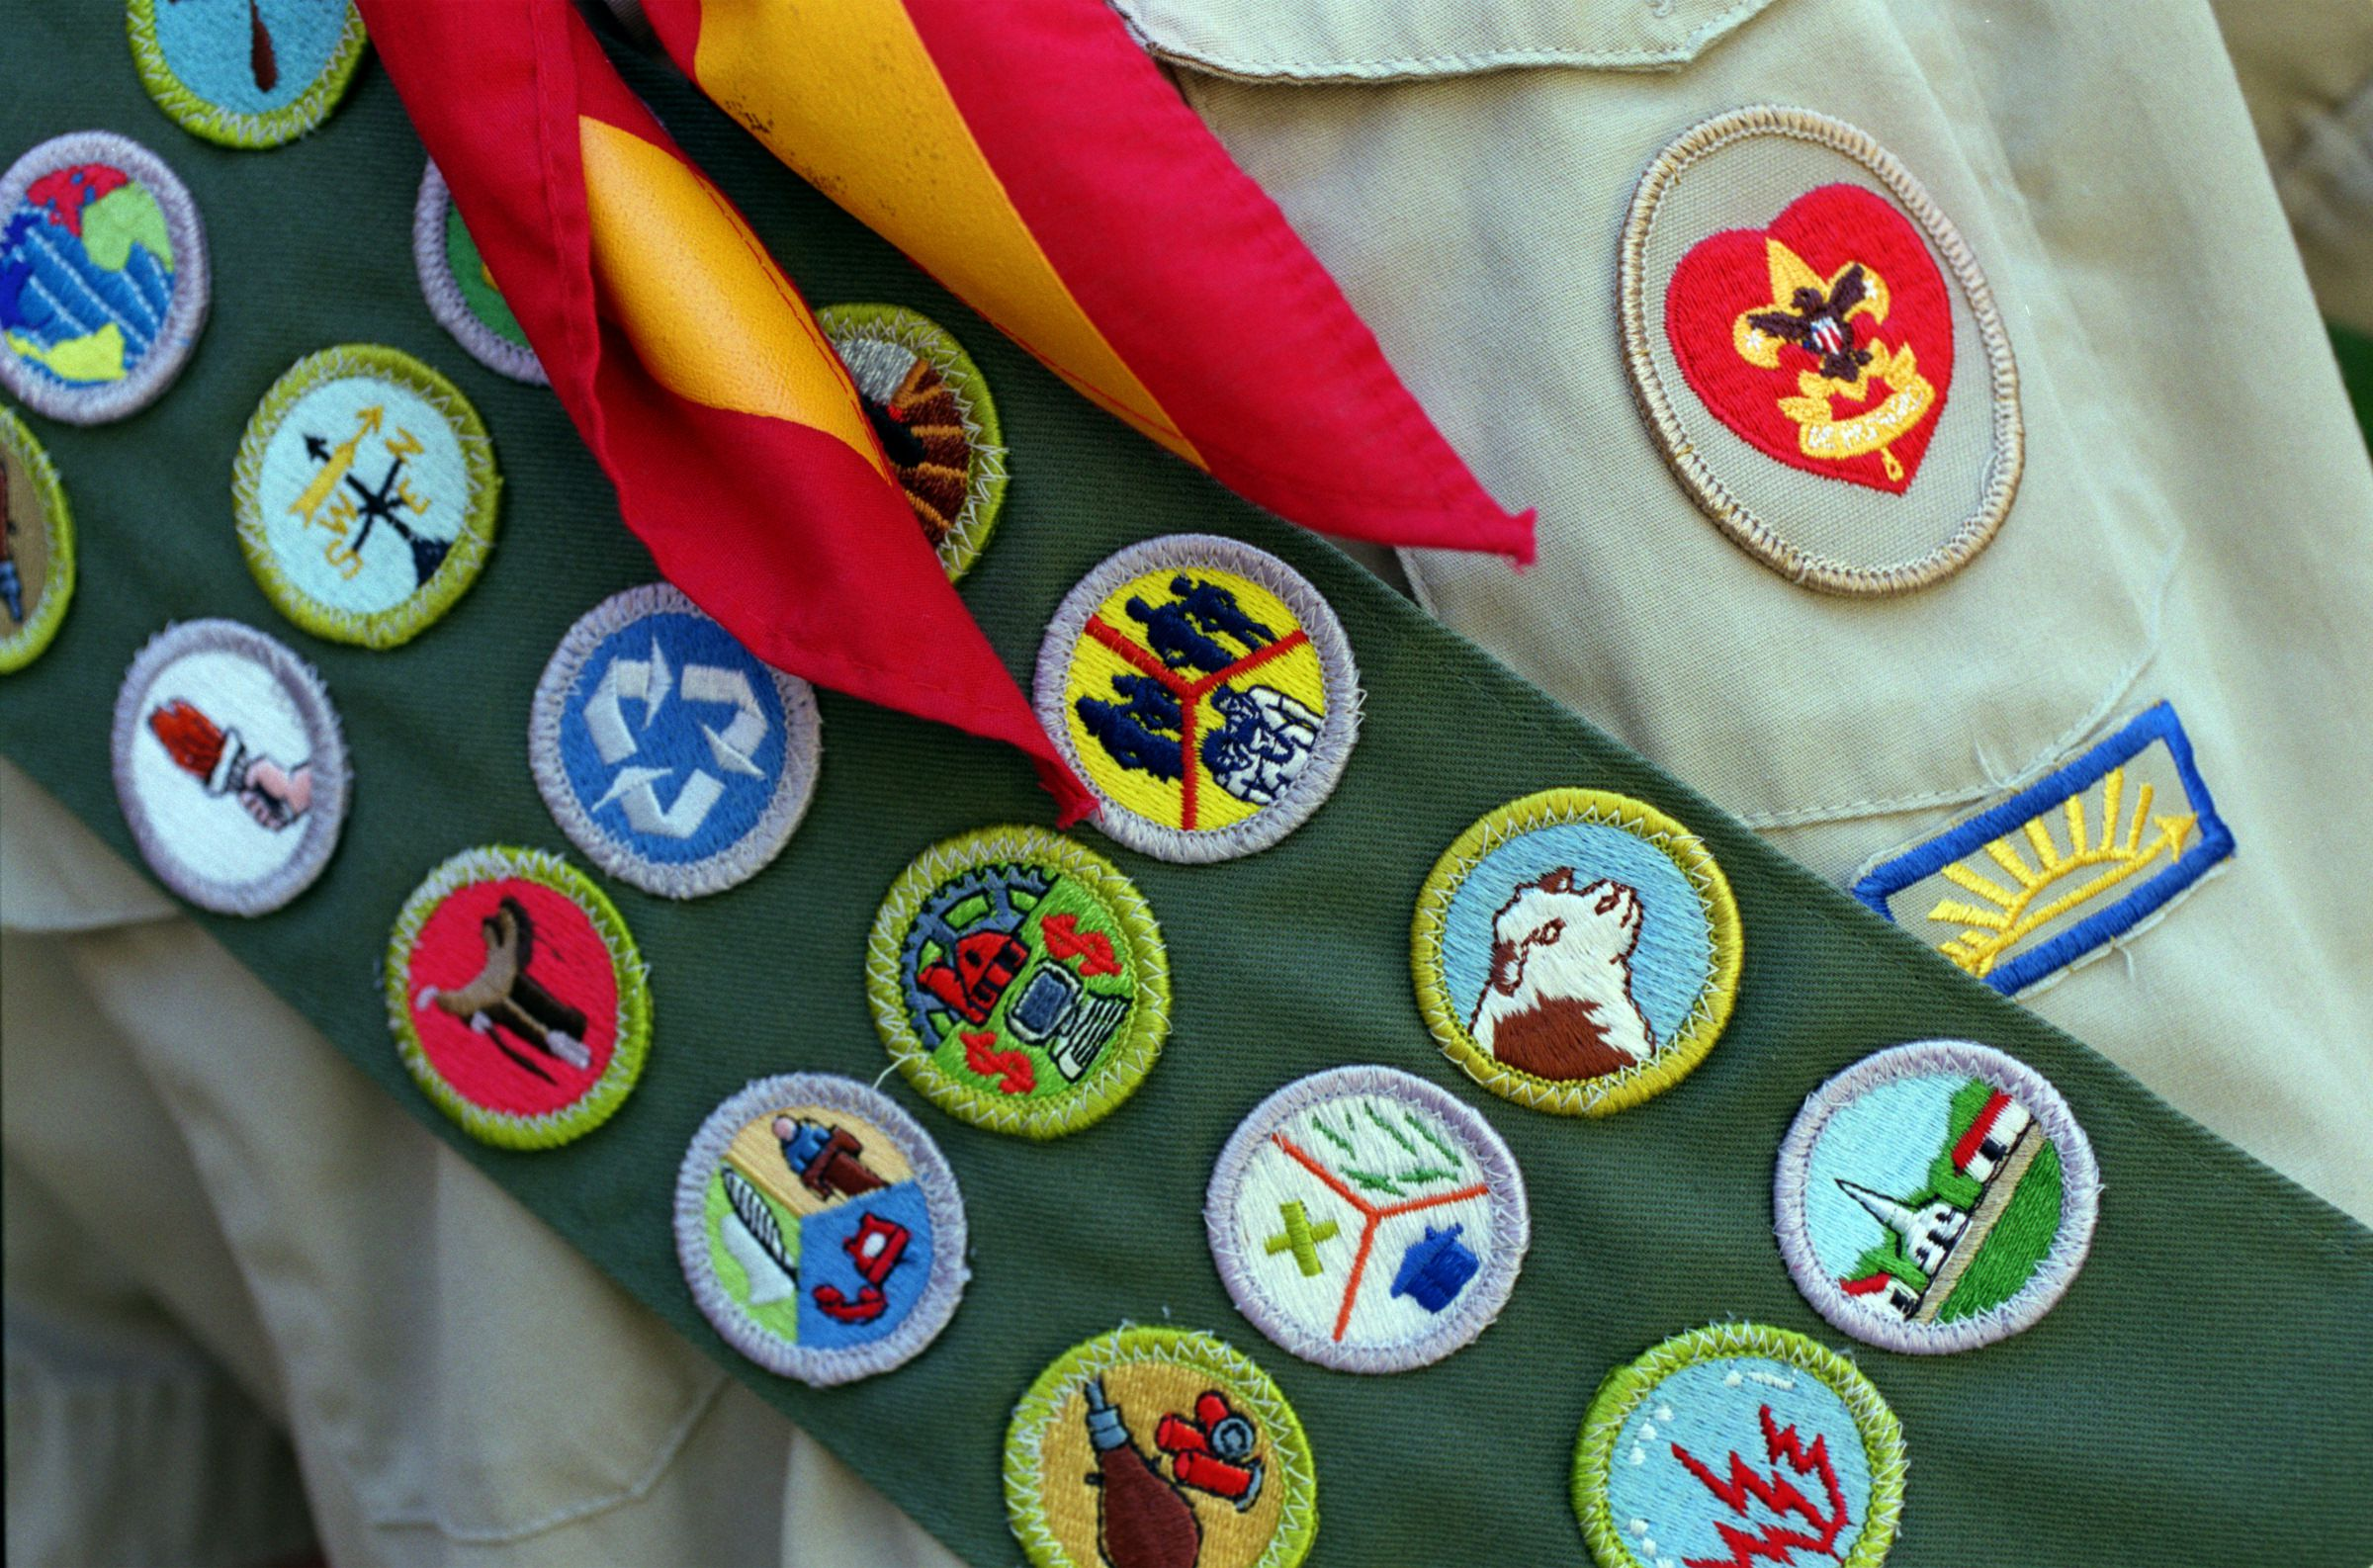 Boy Scouts of America files for bankruptcy - Axios